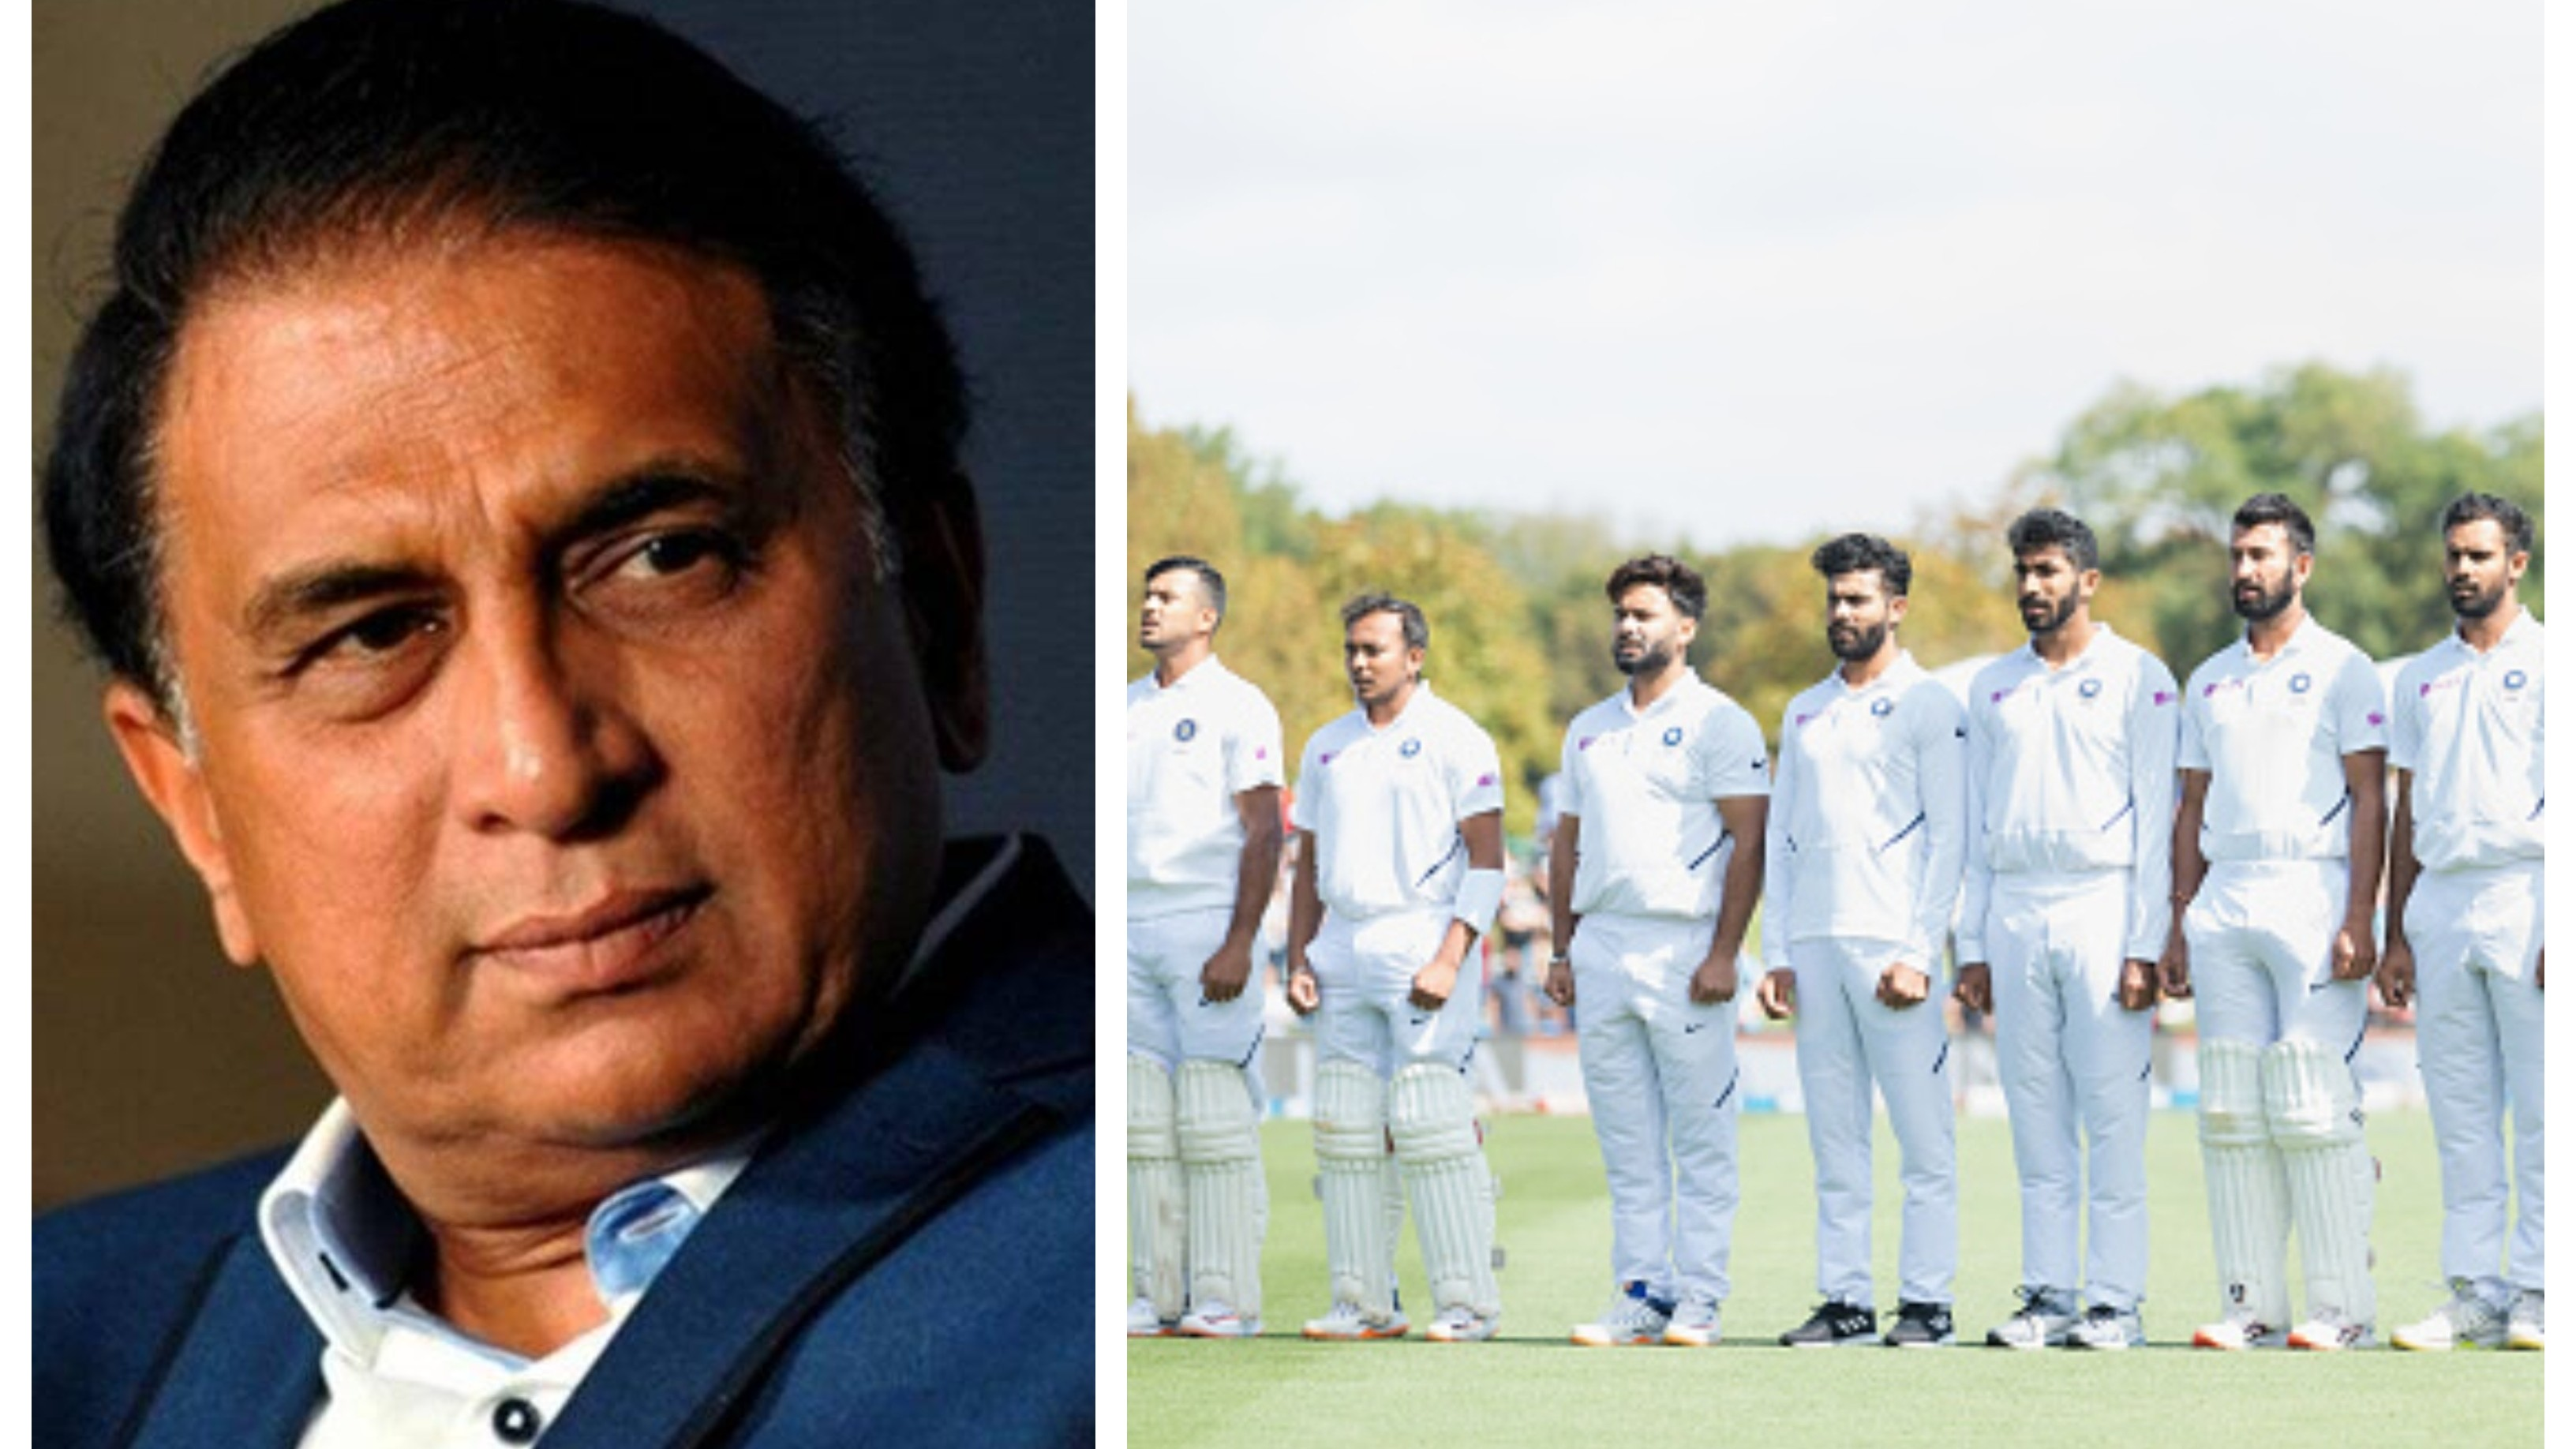 AUS v IND 2020-21: 'Indian players understand they have to make up for Kohli's absence', says Gavaskar